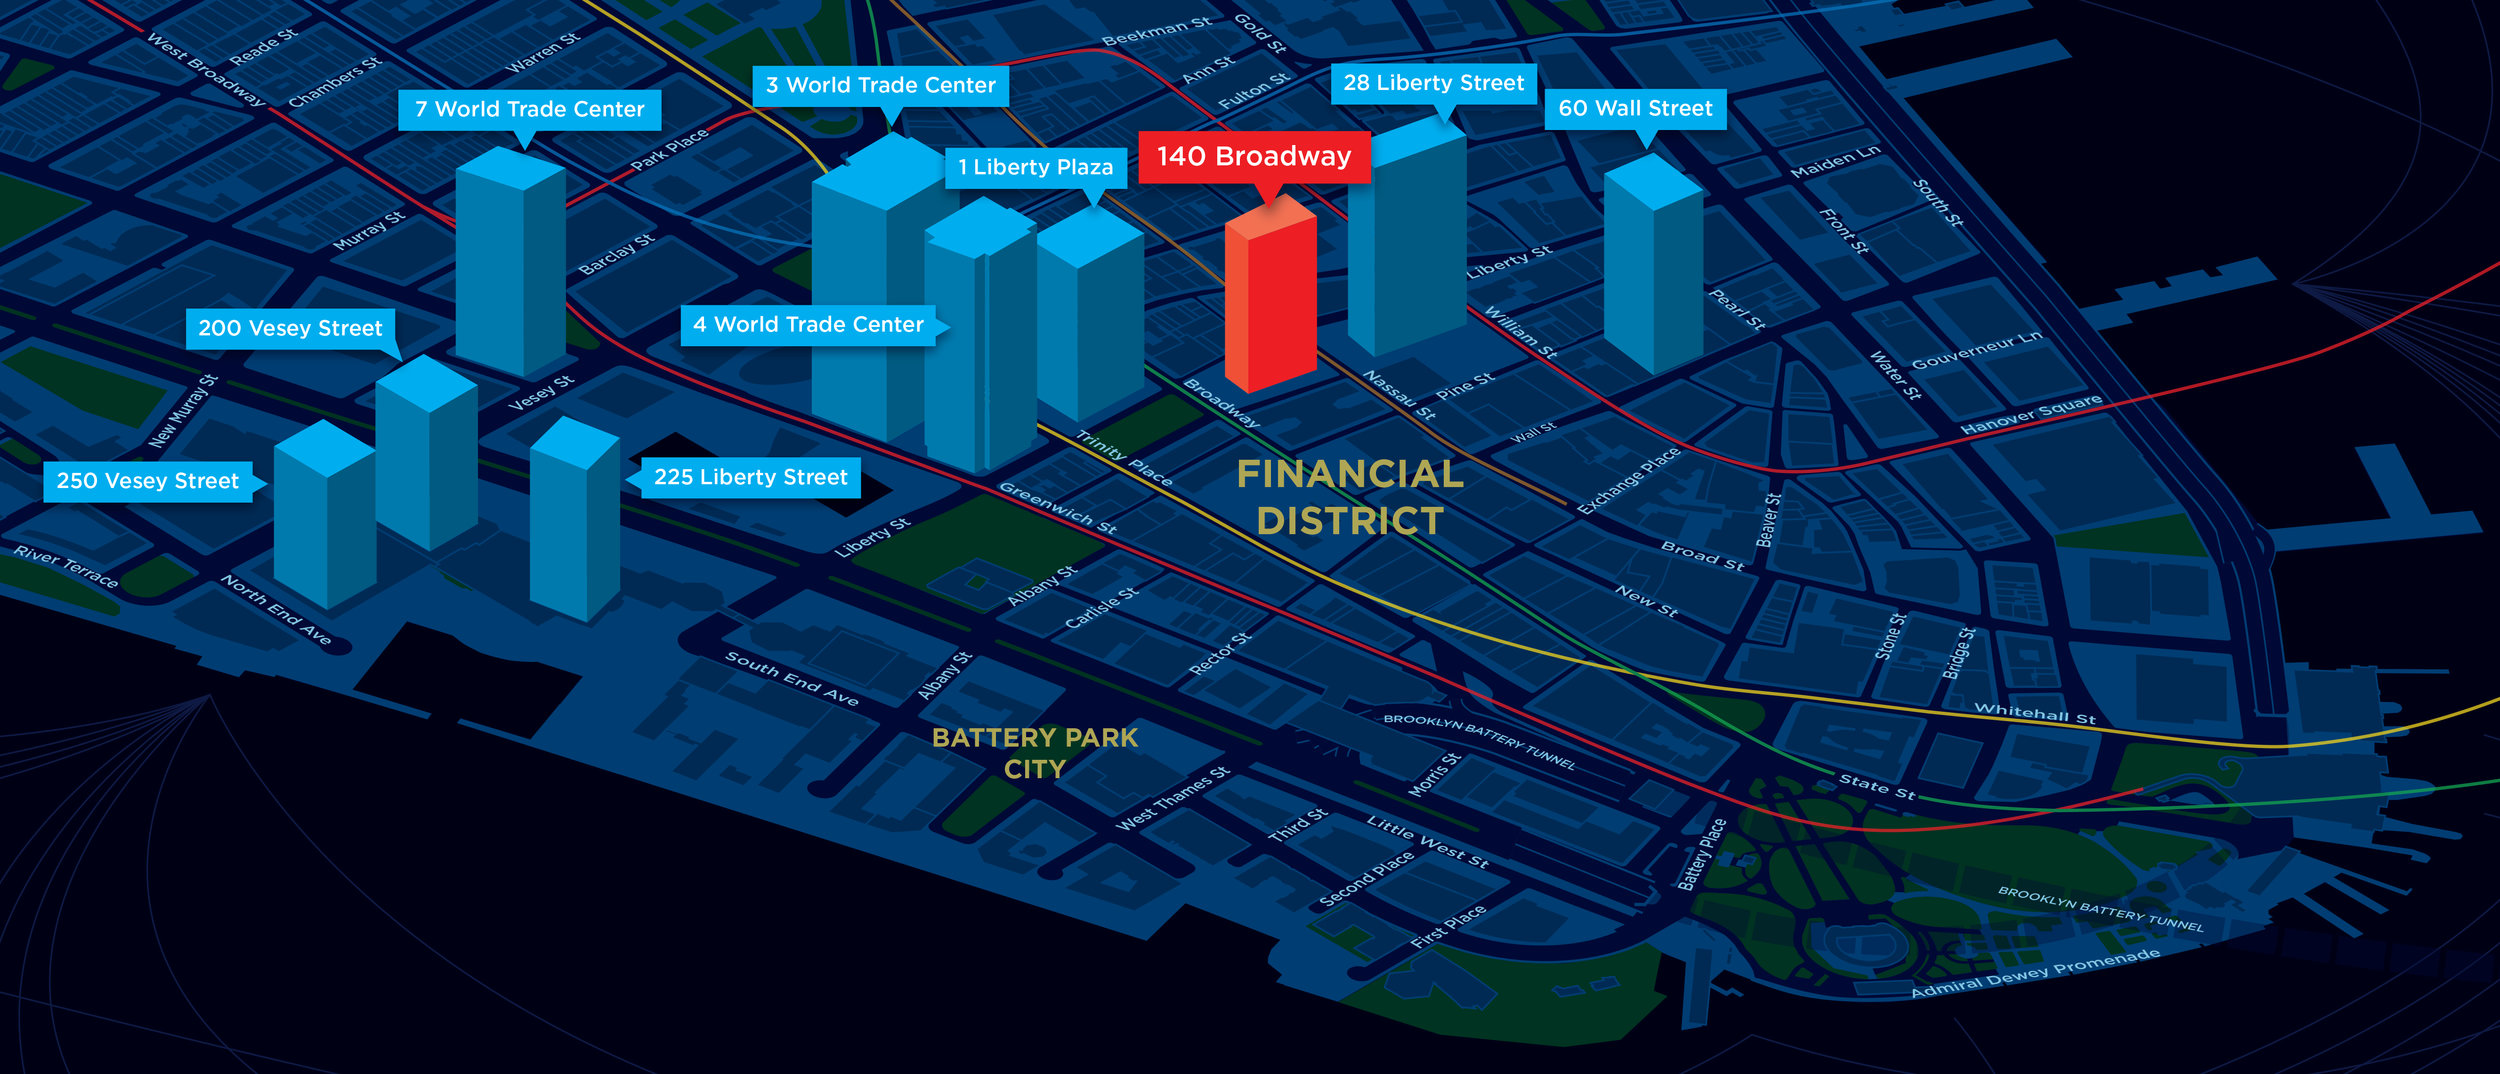 New York City NY Financial District 3D Buildings Map.jpg